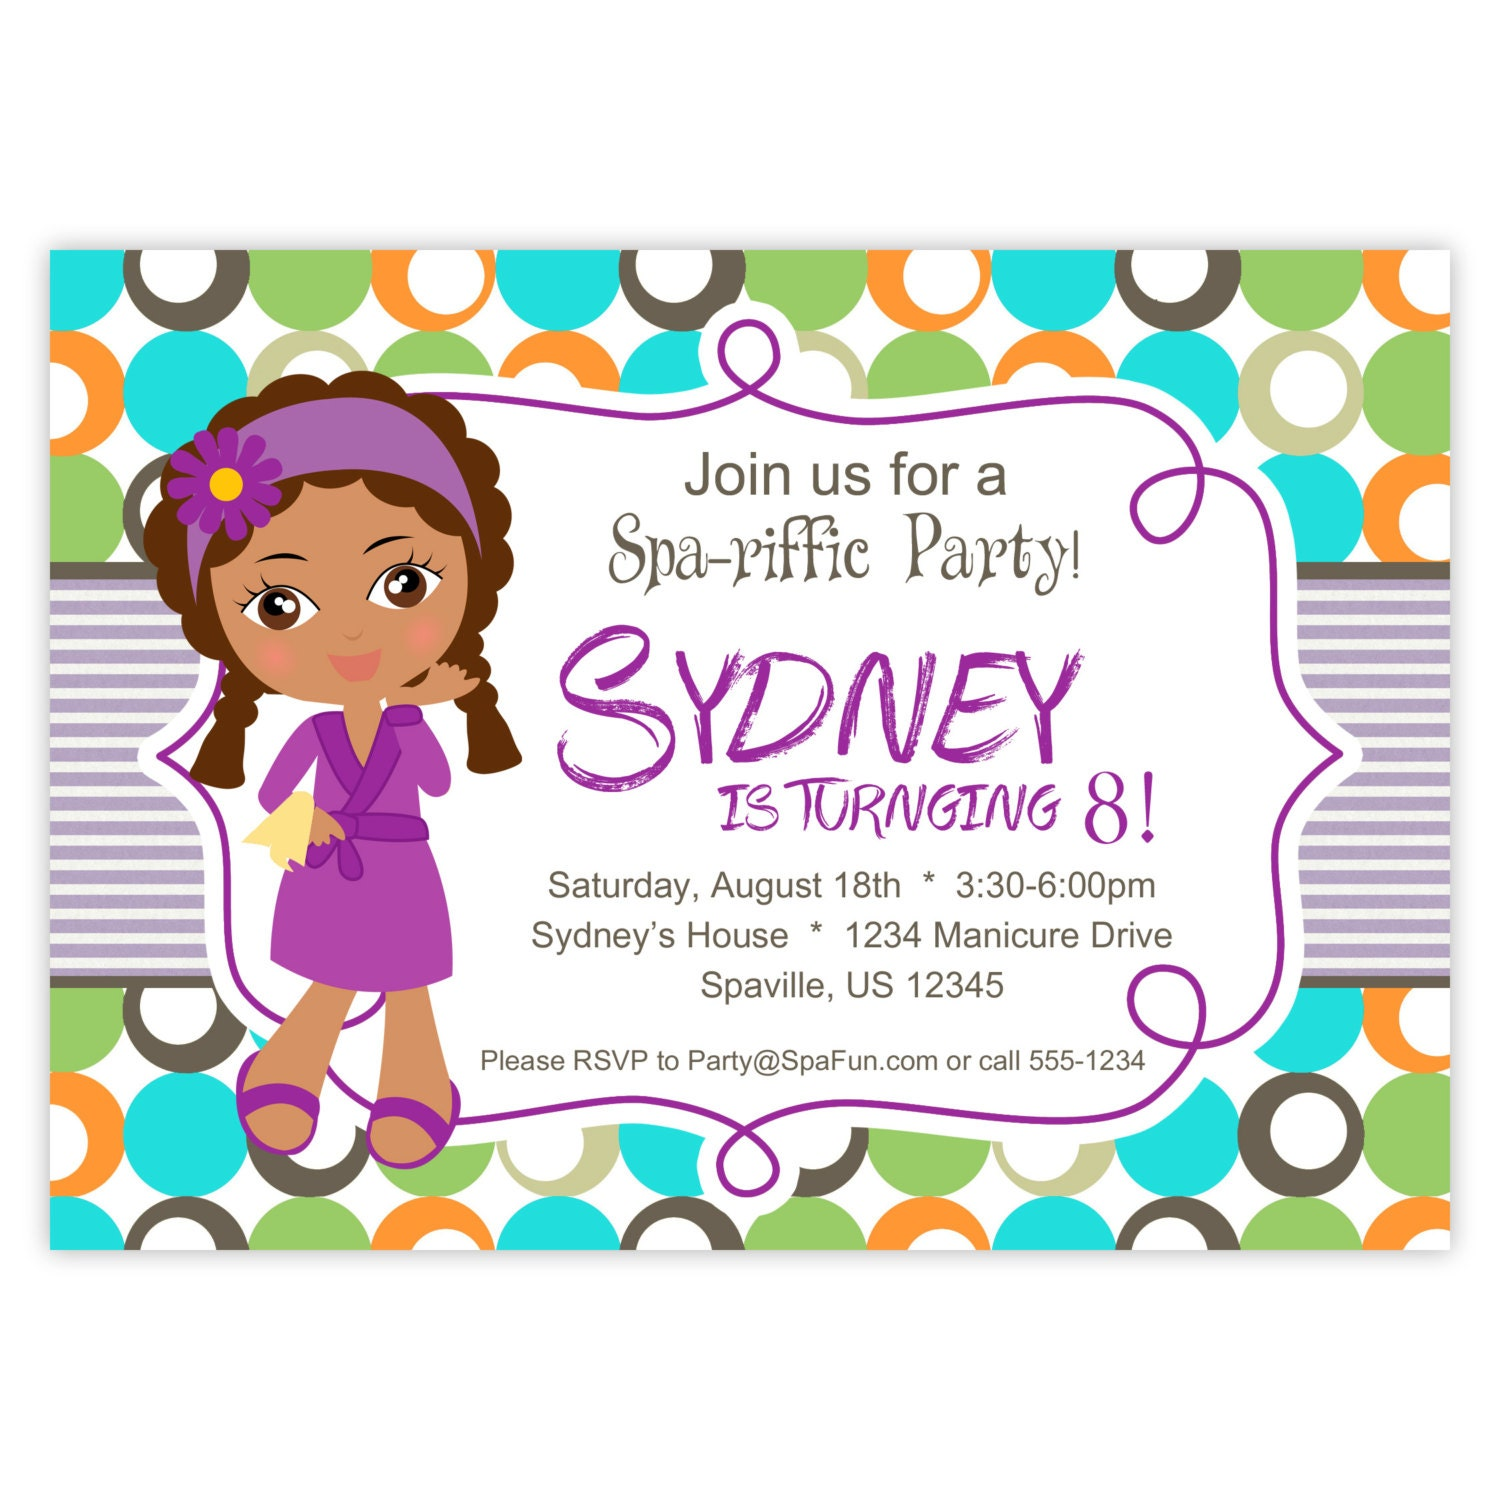 Spa party invitation – Printable Spa Party Invitations